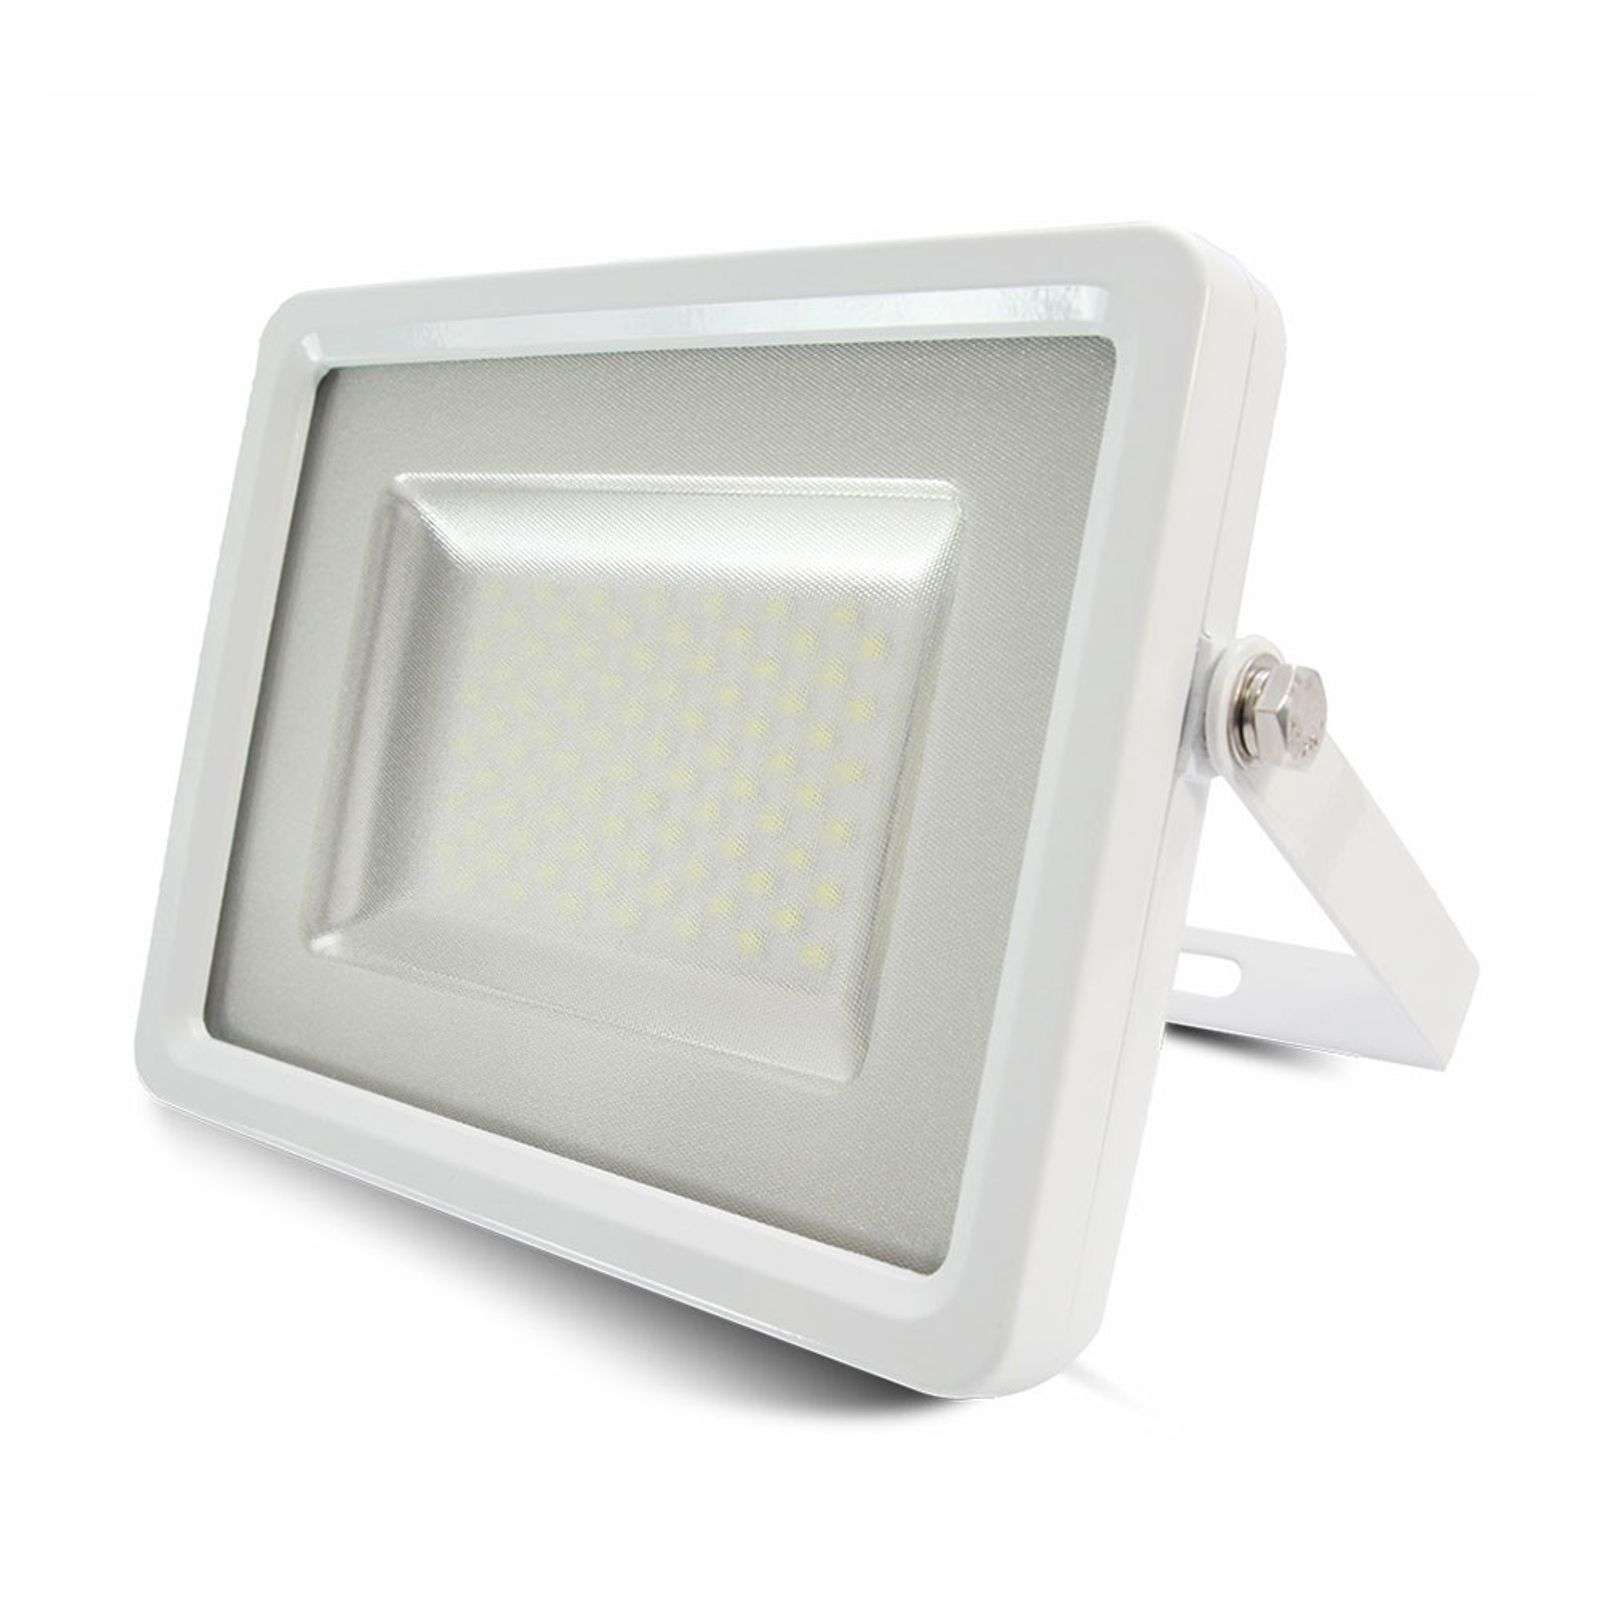 LED buitenspot wit, 100 W, 4.500 K